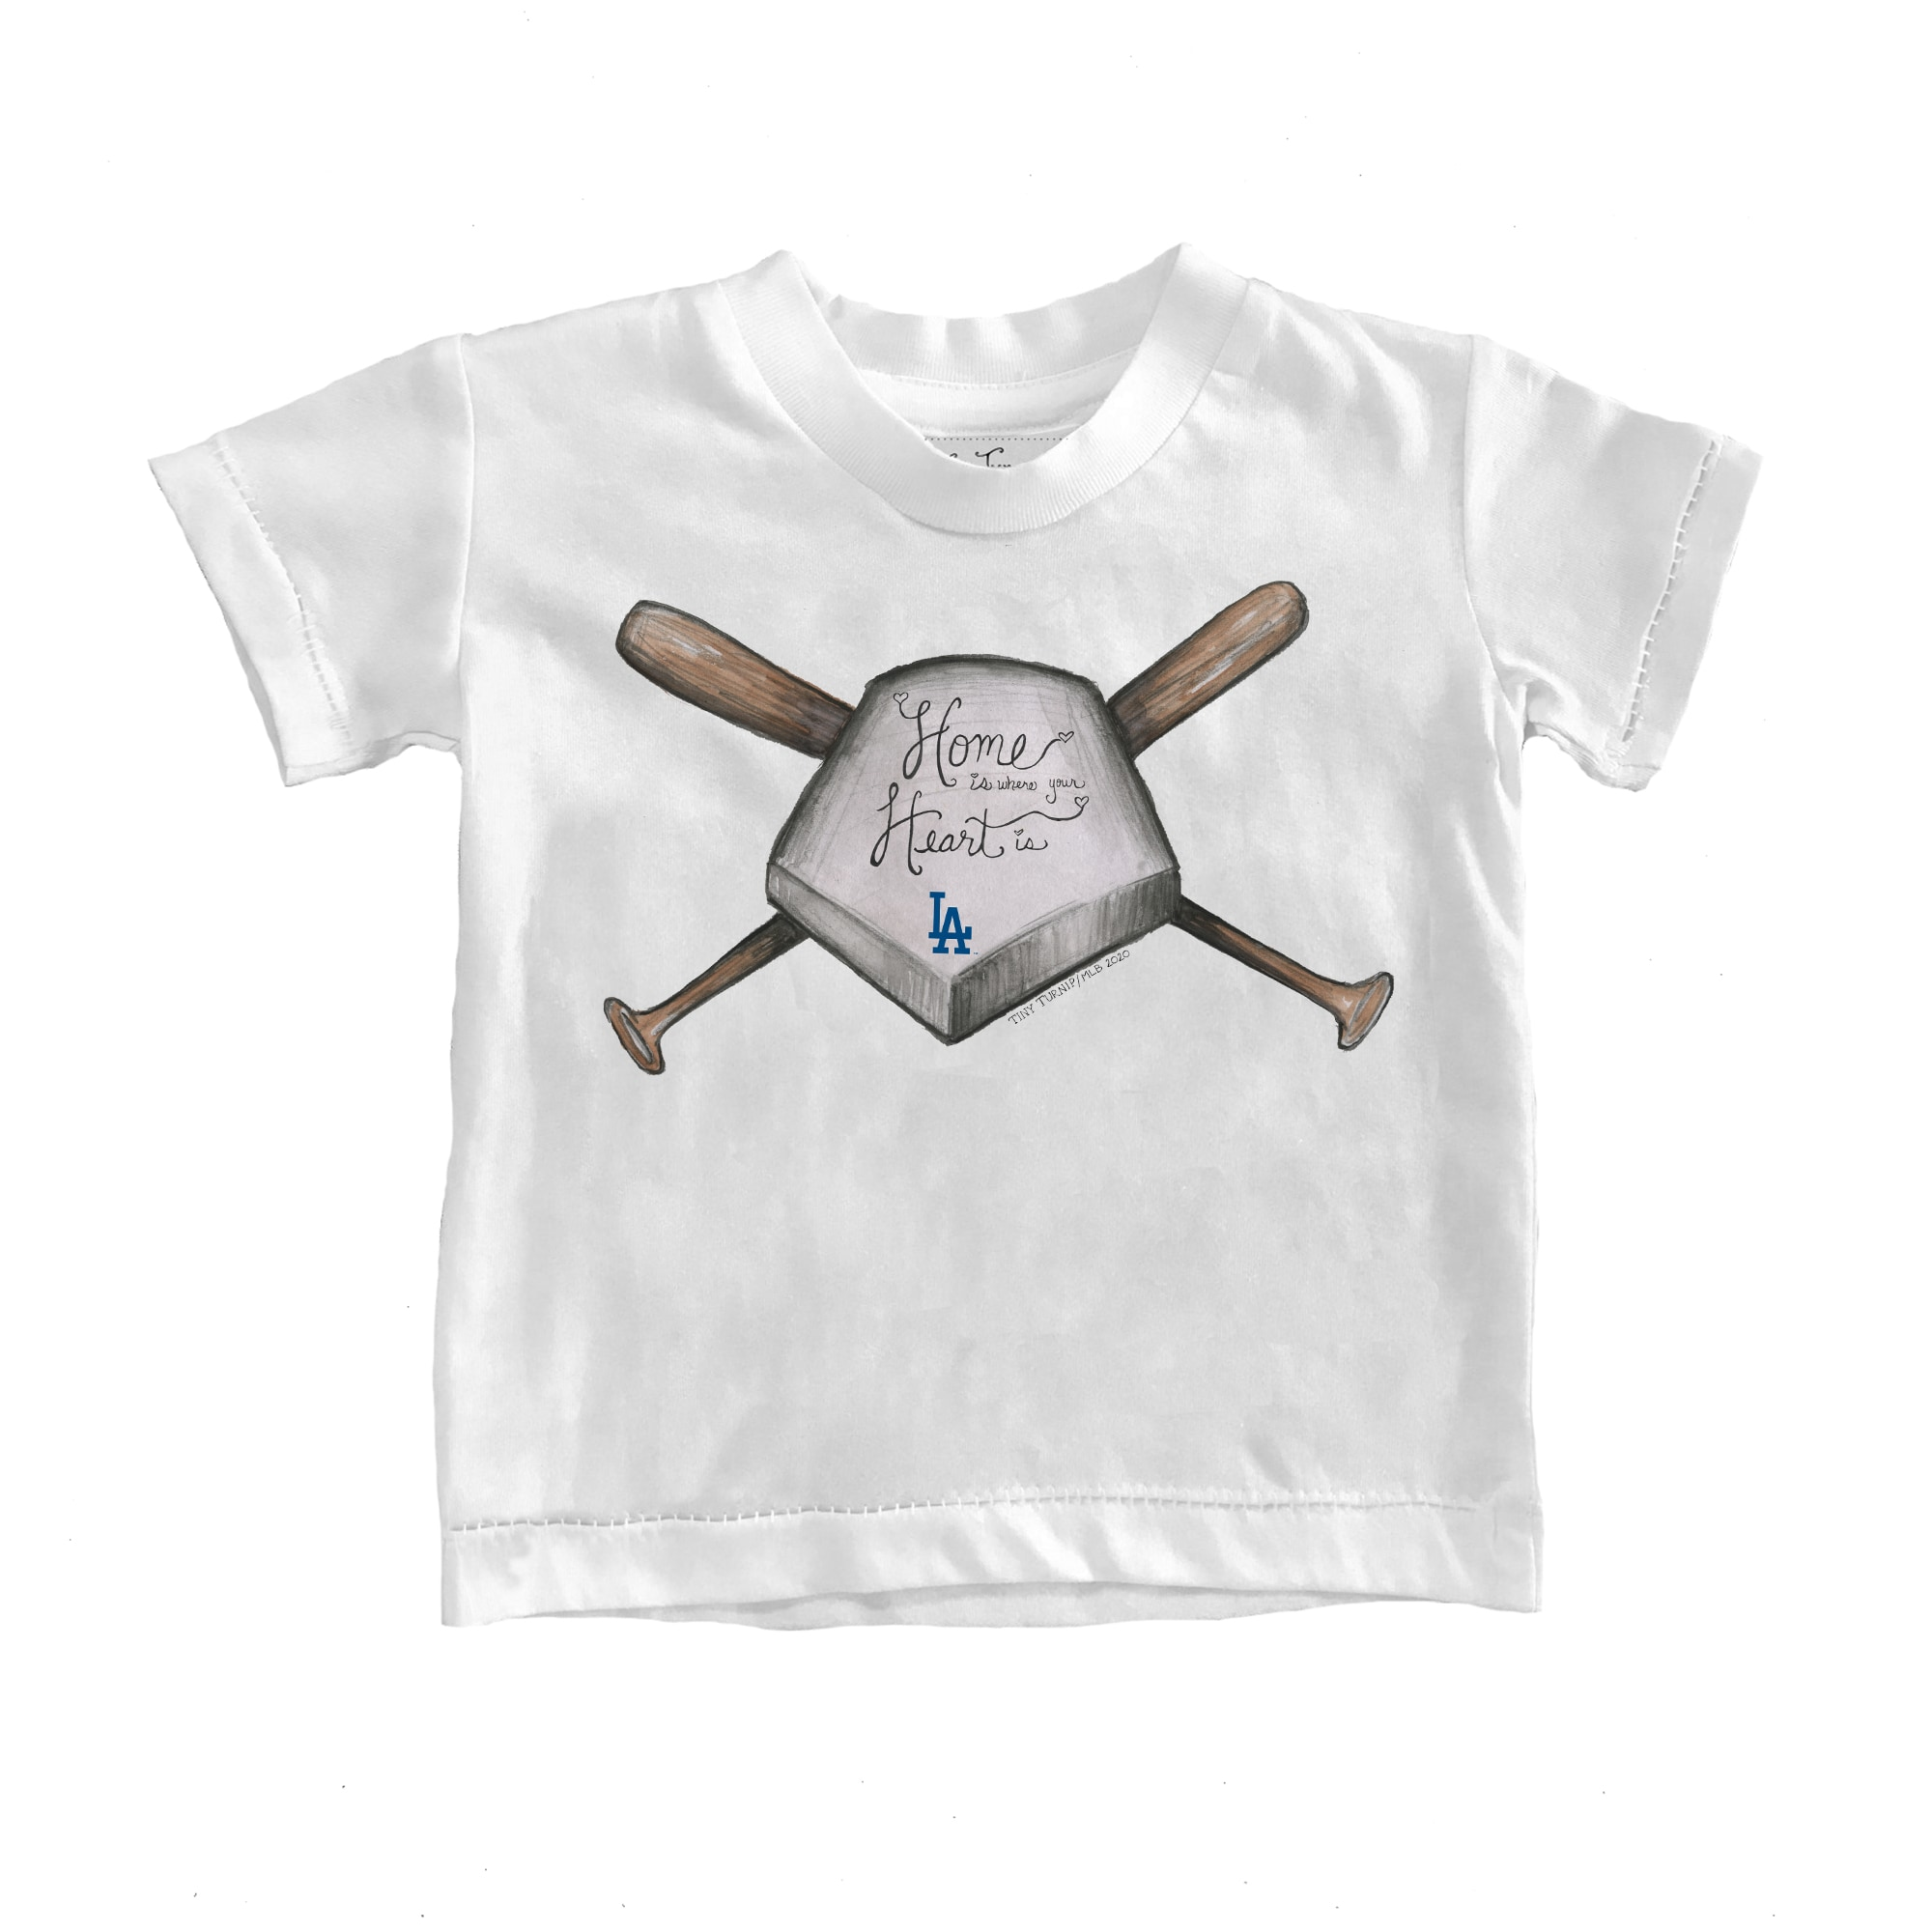 Los Angeles Dodgers Tiny Turnip Infant Home Is Where Your Heart Is T-Shirt - White